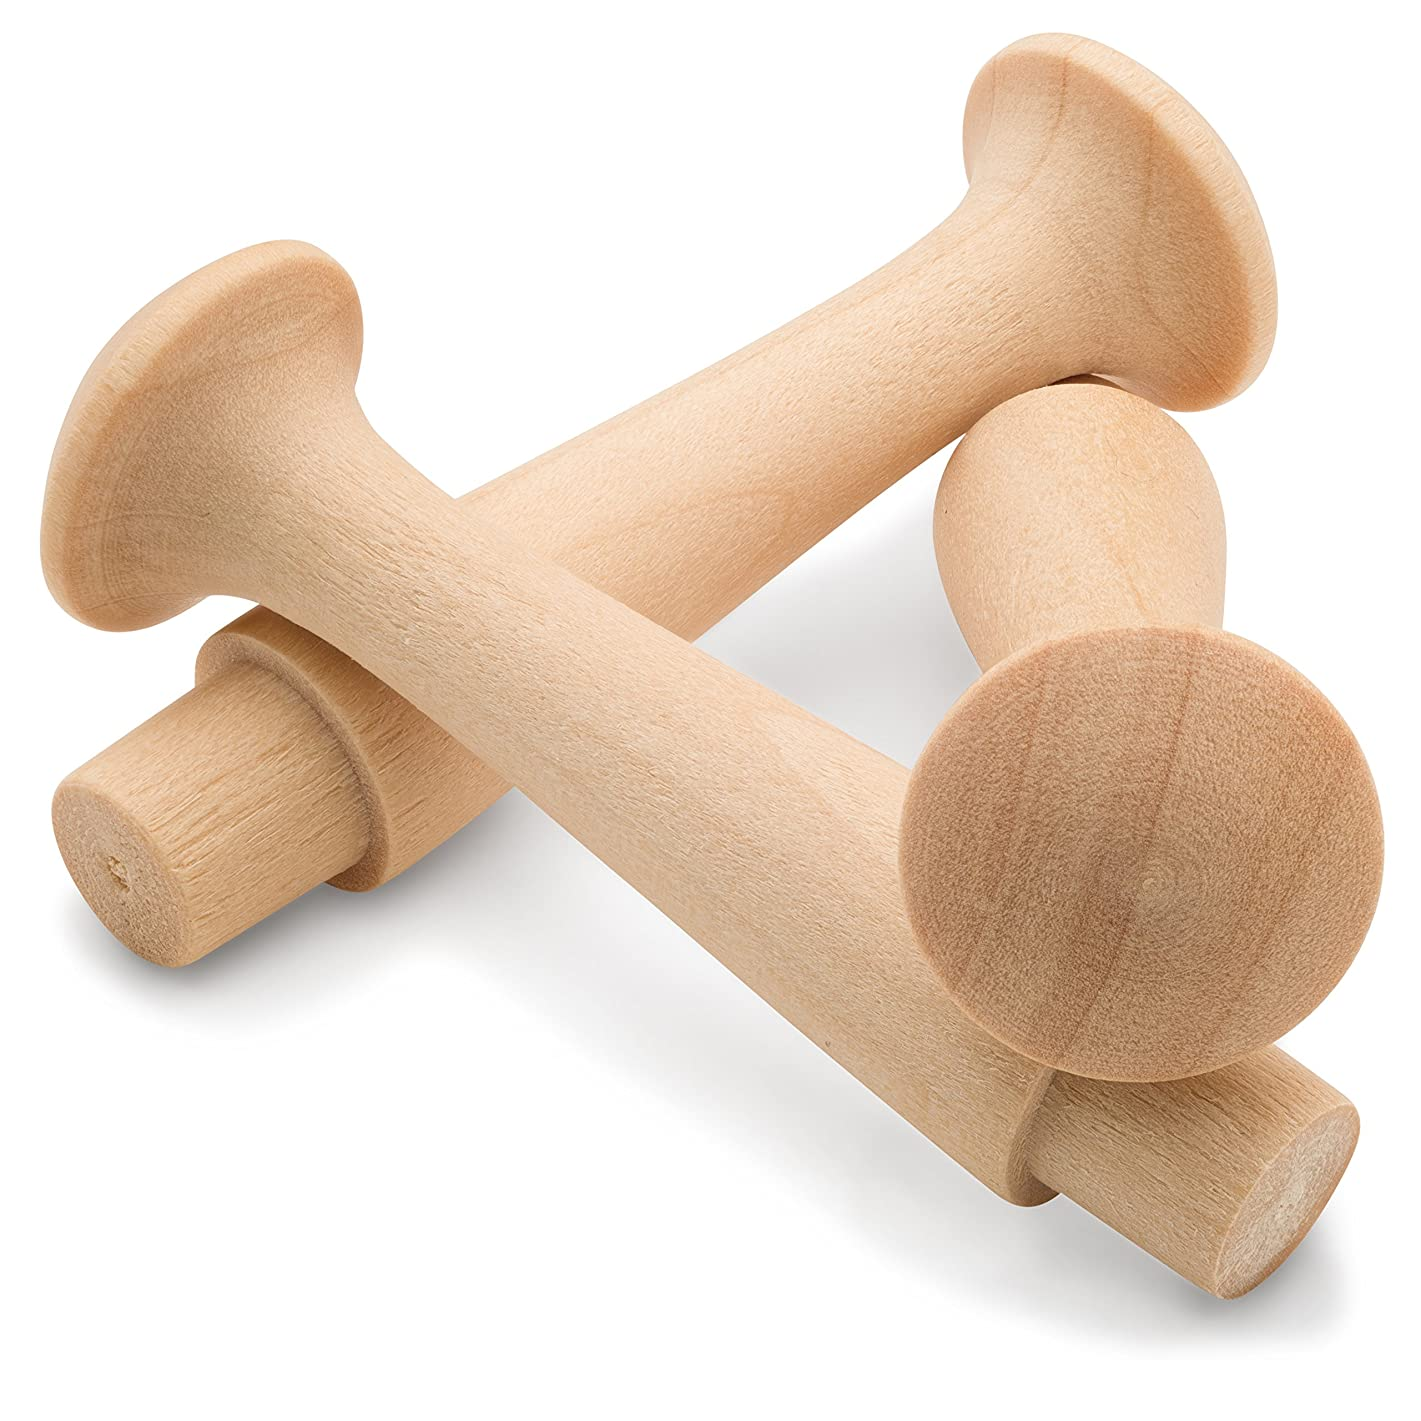 Shaker Pegs 2-7/16 Inch 1/2 Tenon - Package of 25 - by Woodpeckers